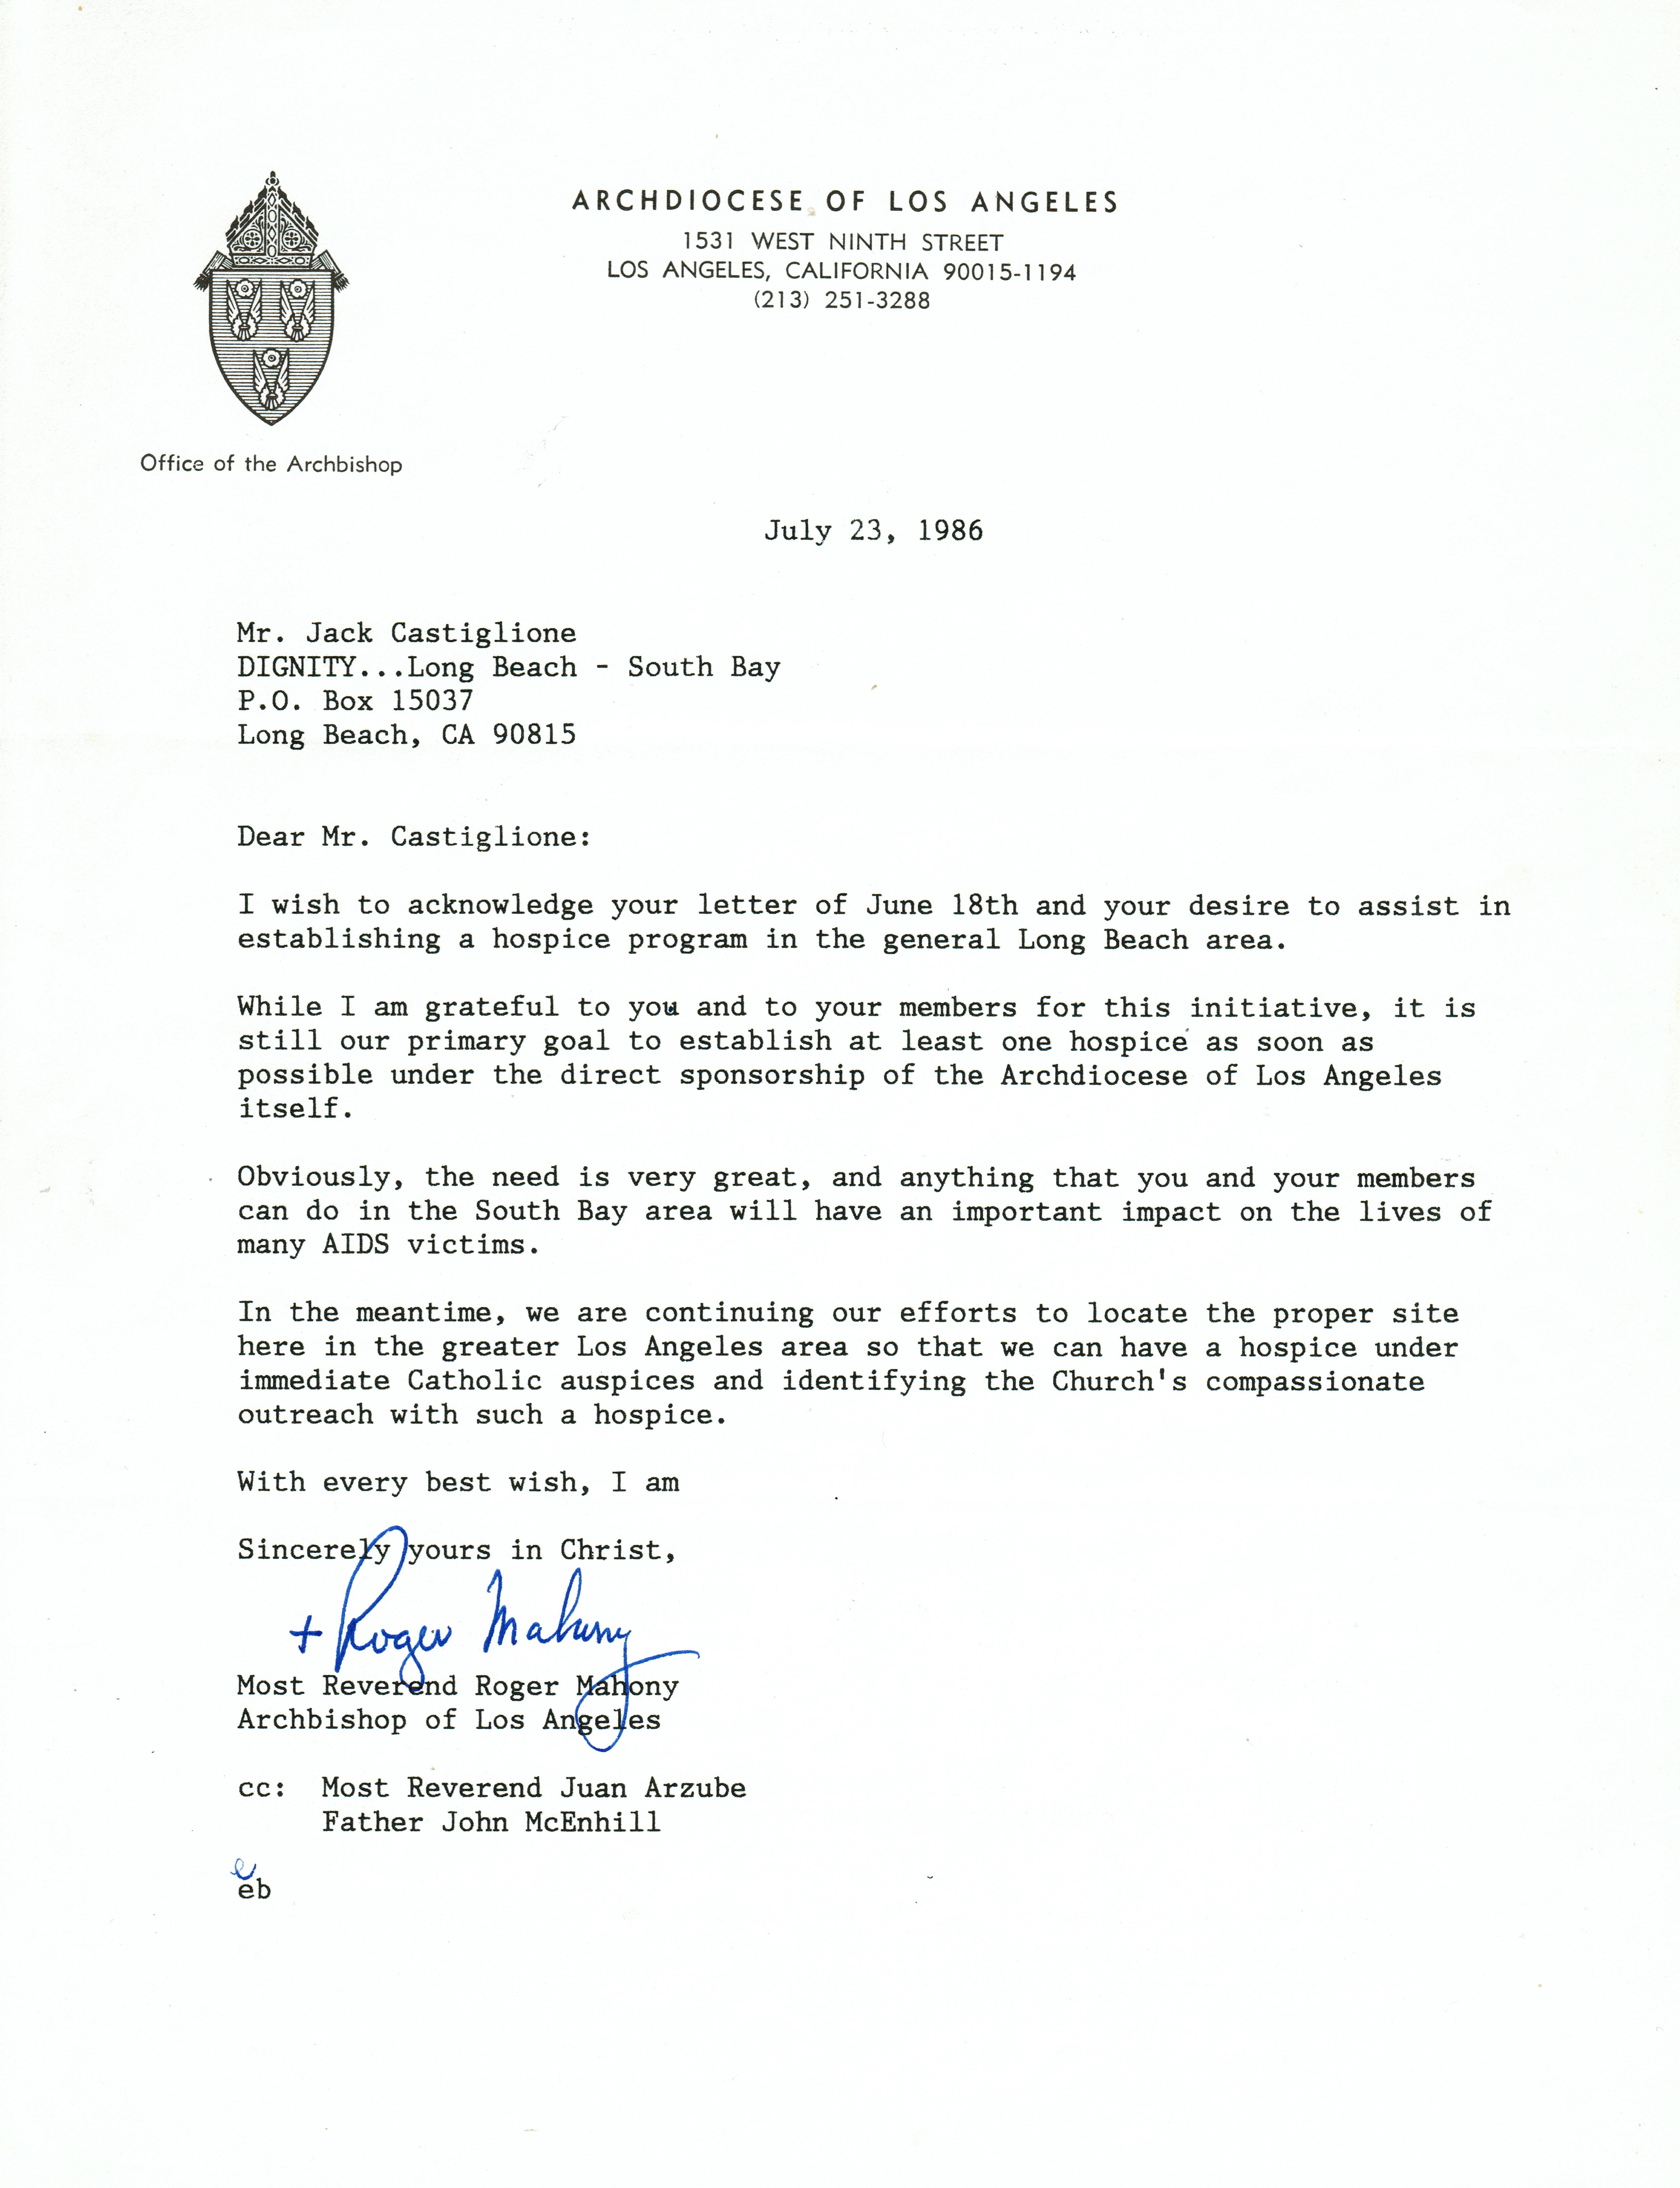 Correspondence with the Archbishop of Los Angeles - Jack